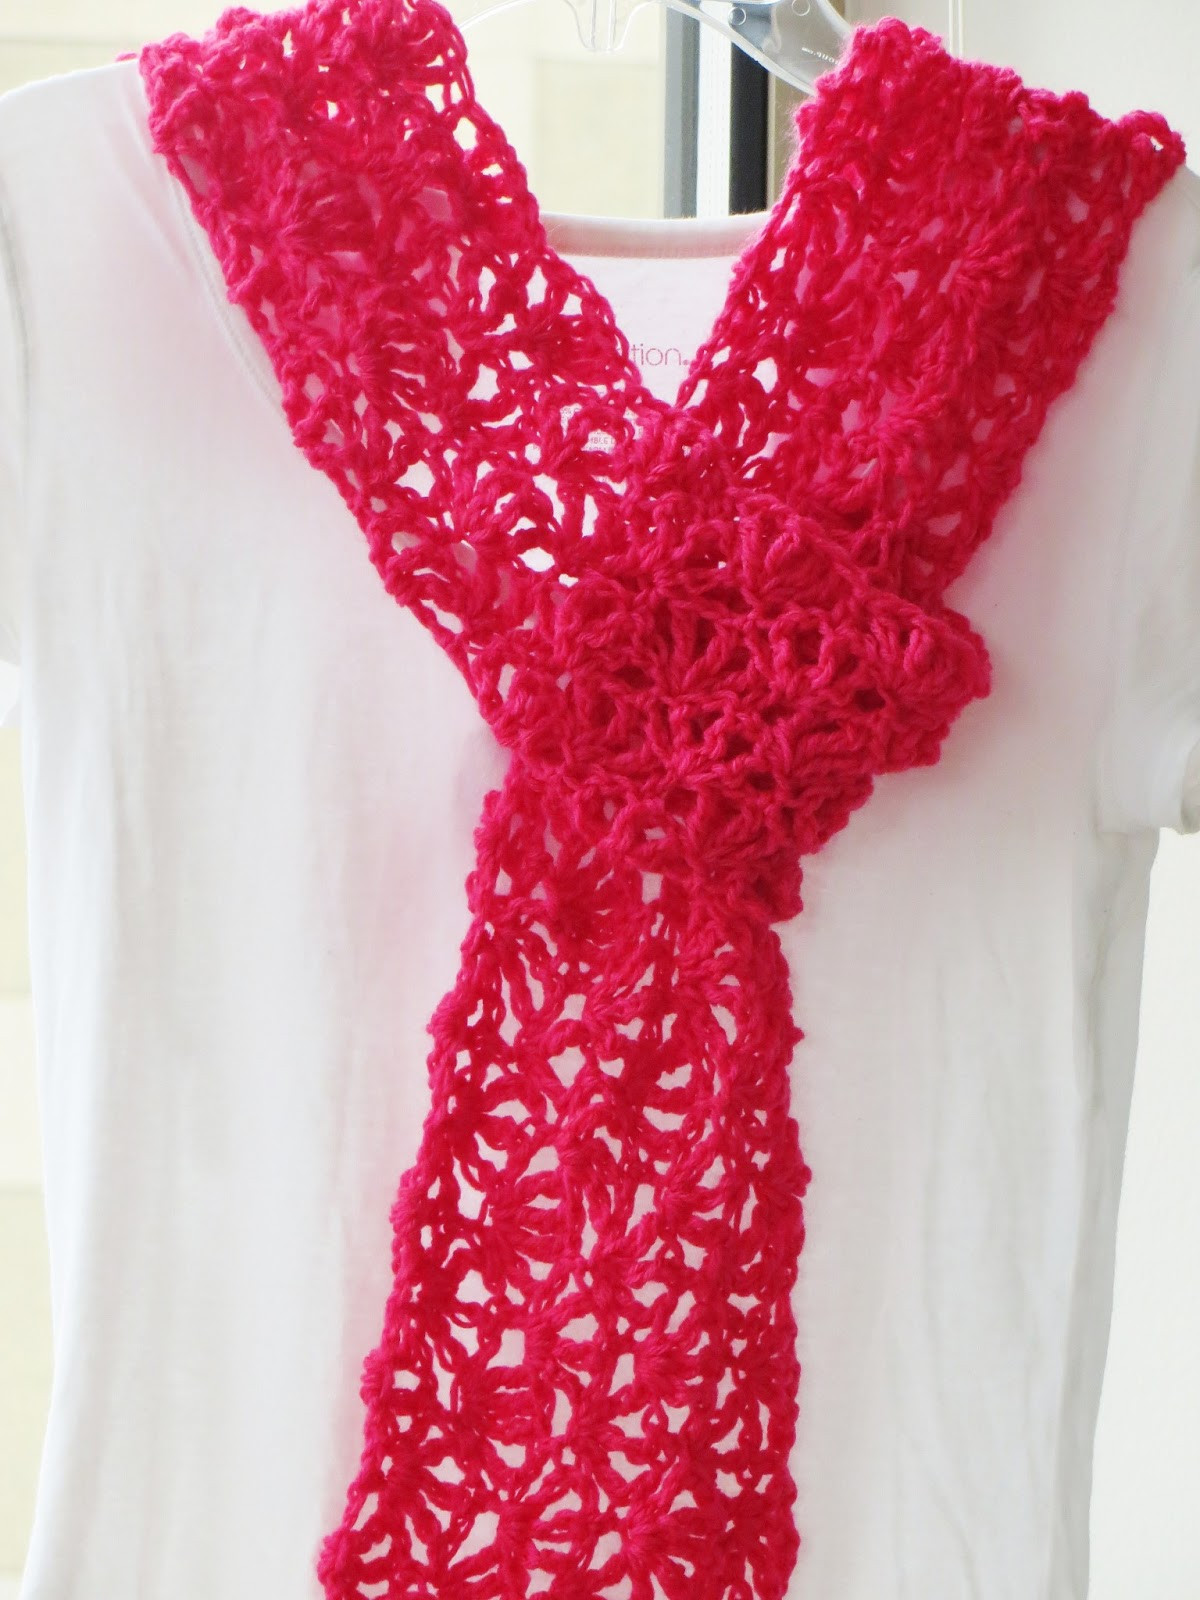 Scarf Crochet New Crochet Dreamz Alana Lacy Scarf Free Crochet Pattern Of Innovative 47 Pictures Scarf Crochet